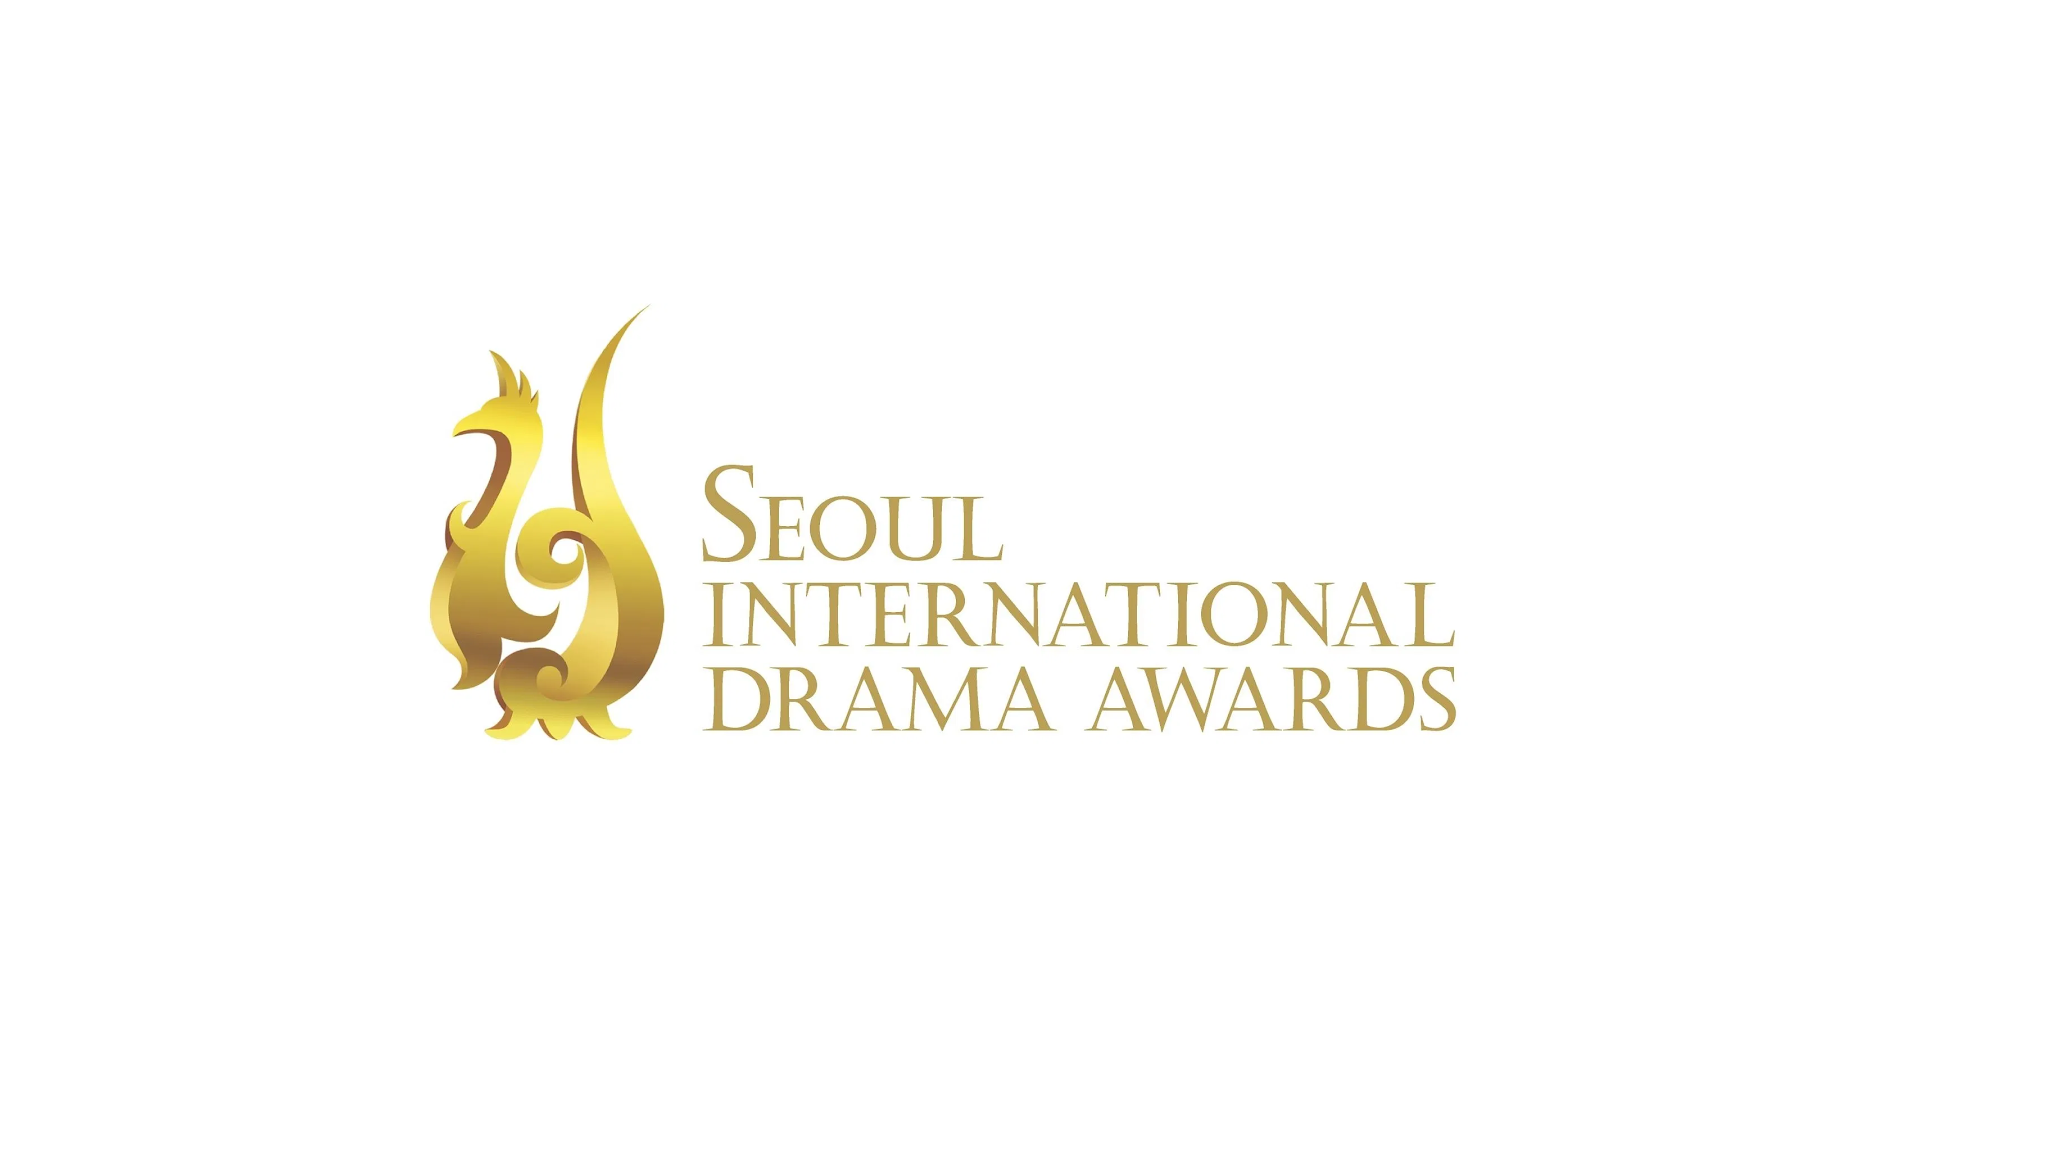 Here are The Winners of The 2020 'Seoul International Drama Awards'!